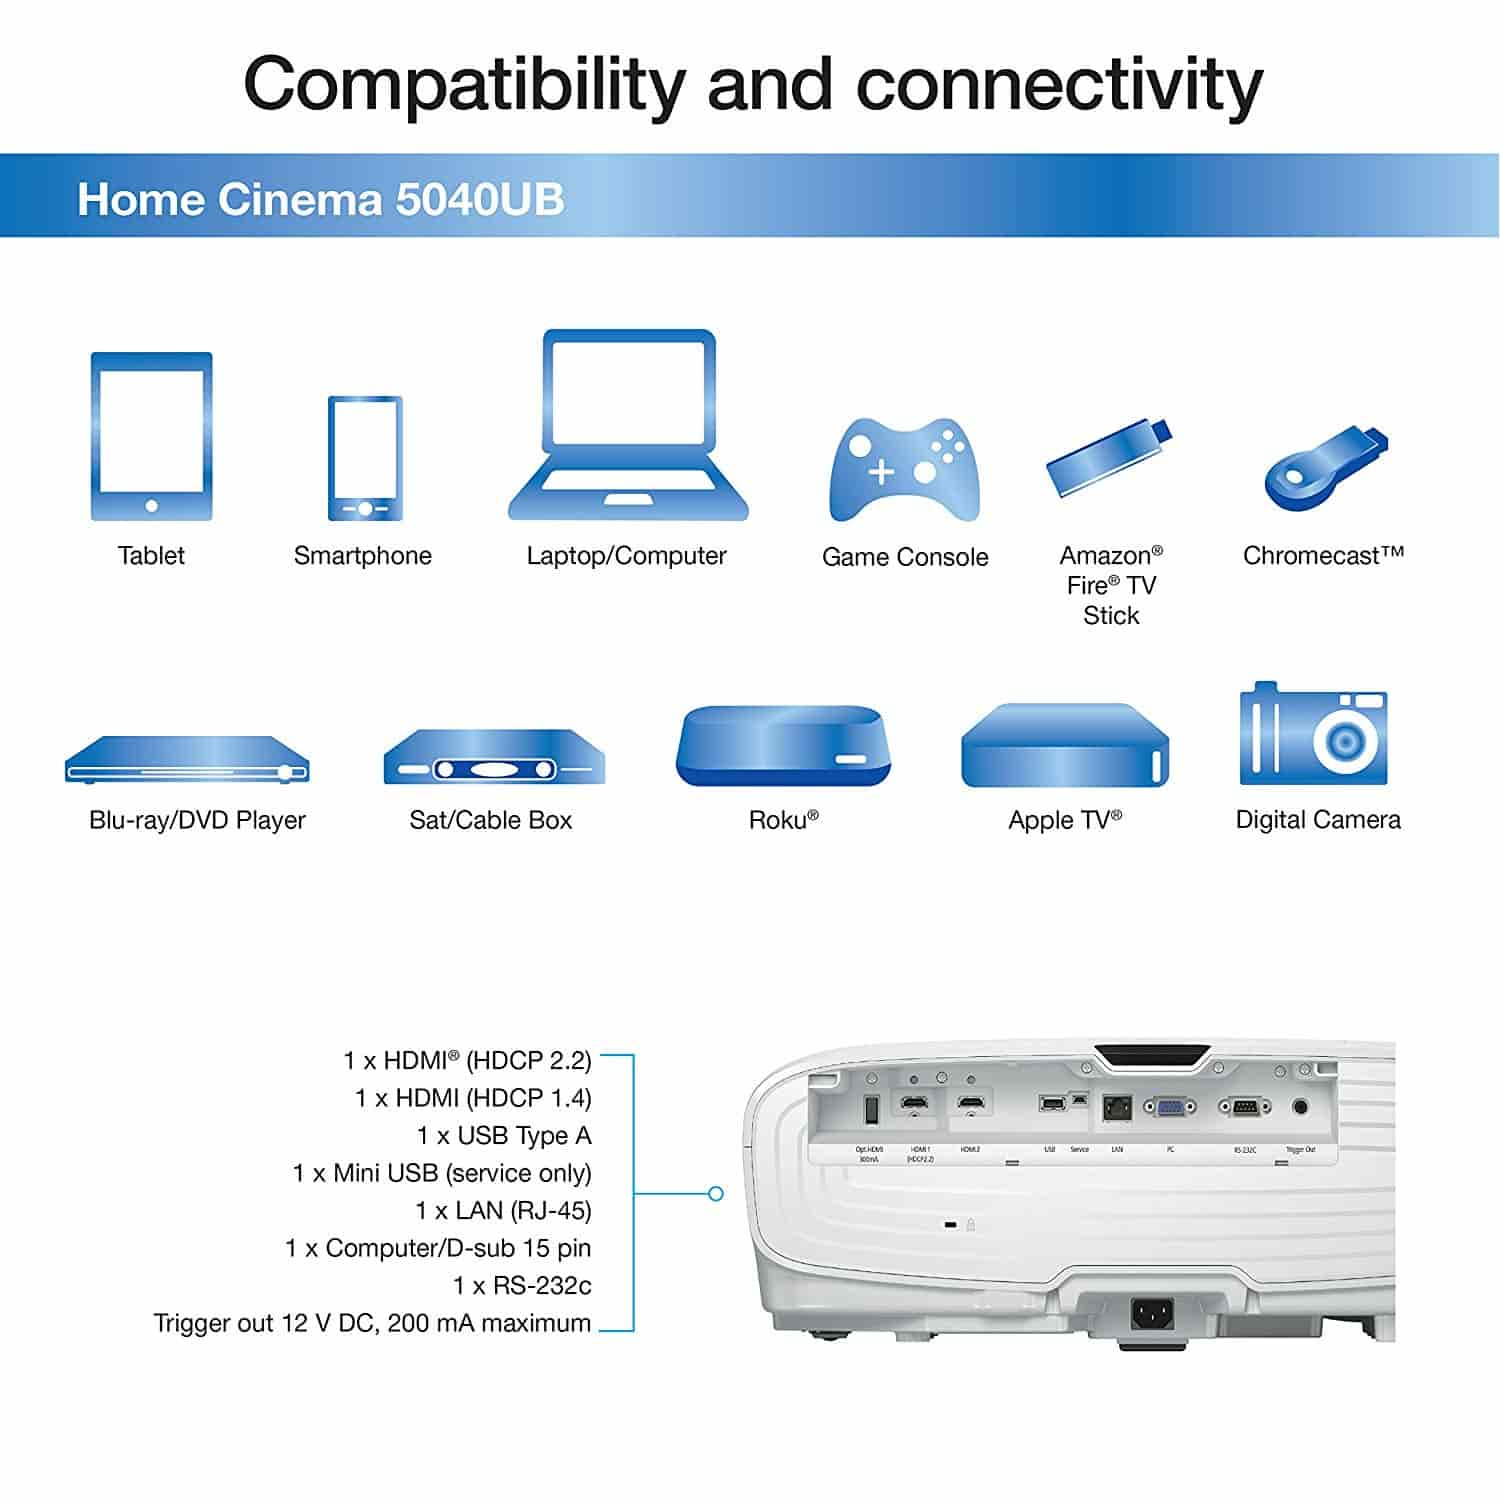 Epson Home Cinema 5040UB Compatibility and Connectivity